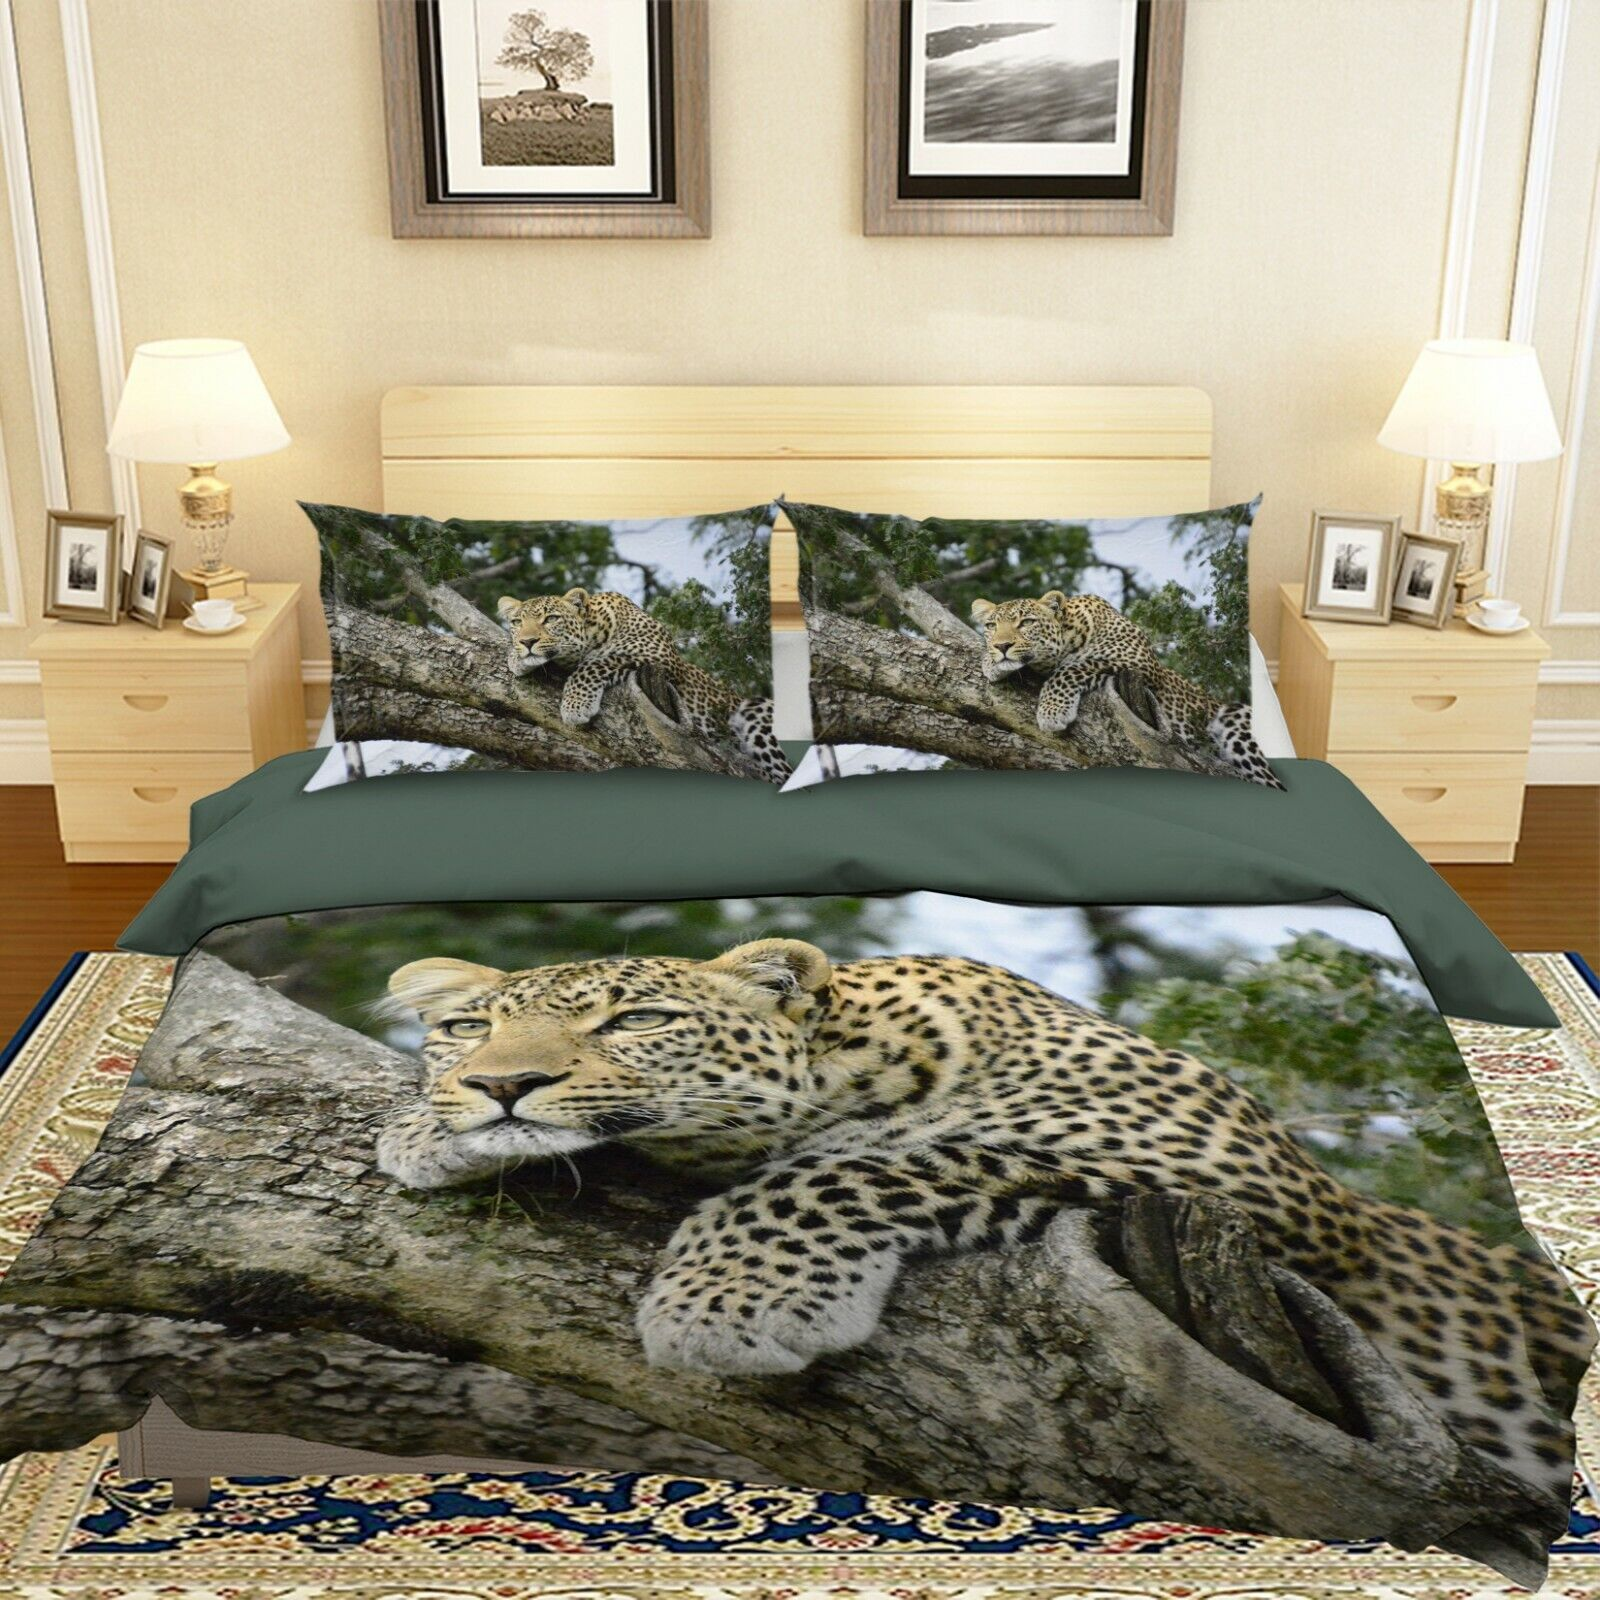 3D Leopard N68 Animal Bed Pillowcases Quilt Duvet Cover Queen King Amy